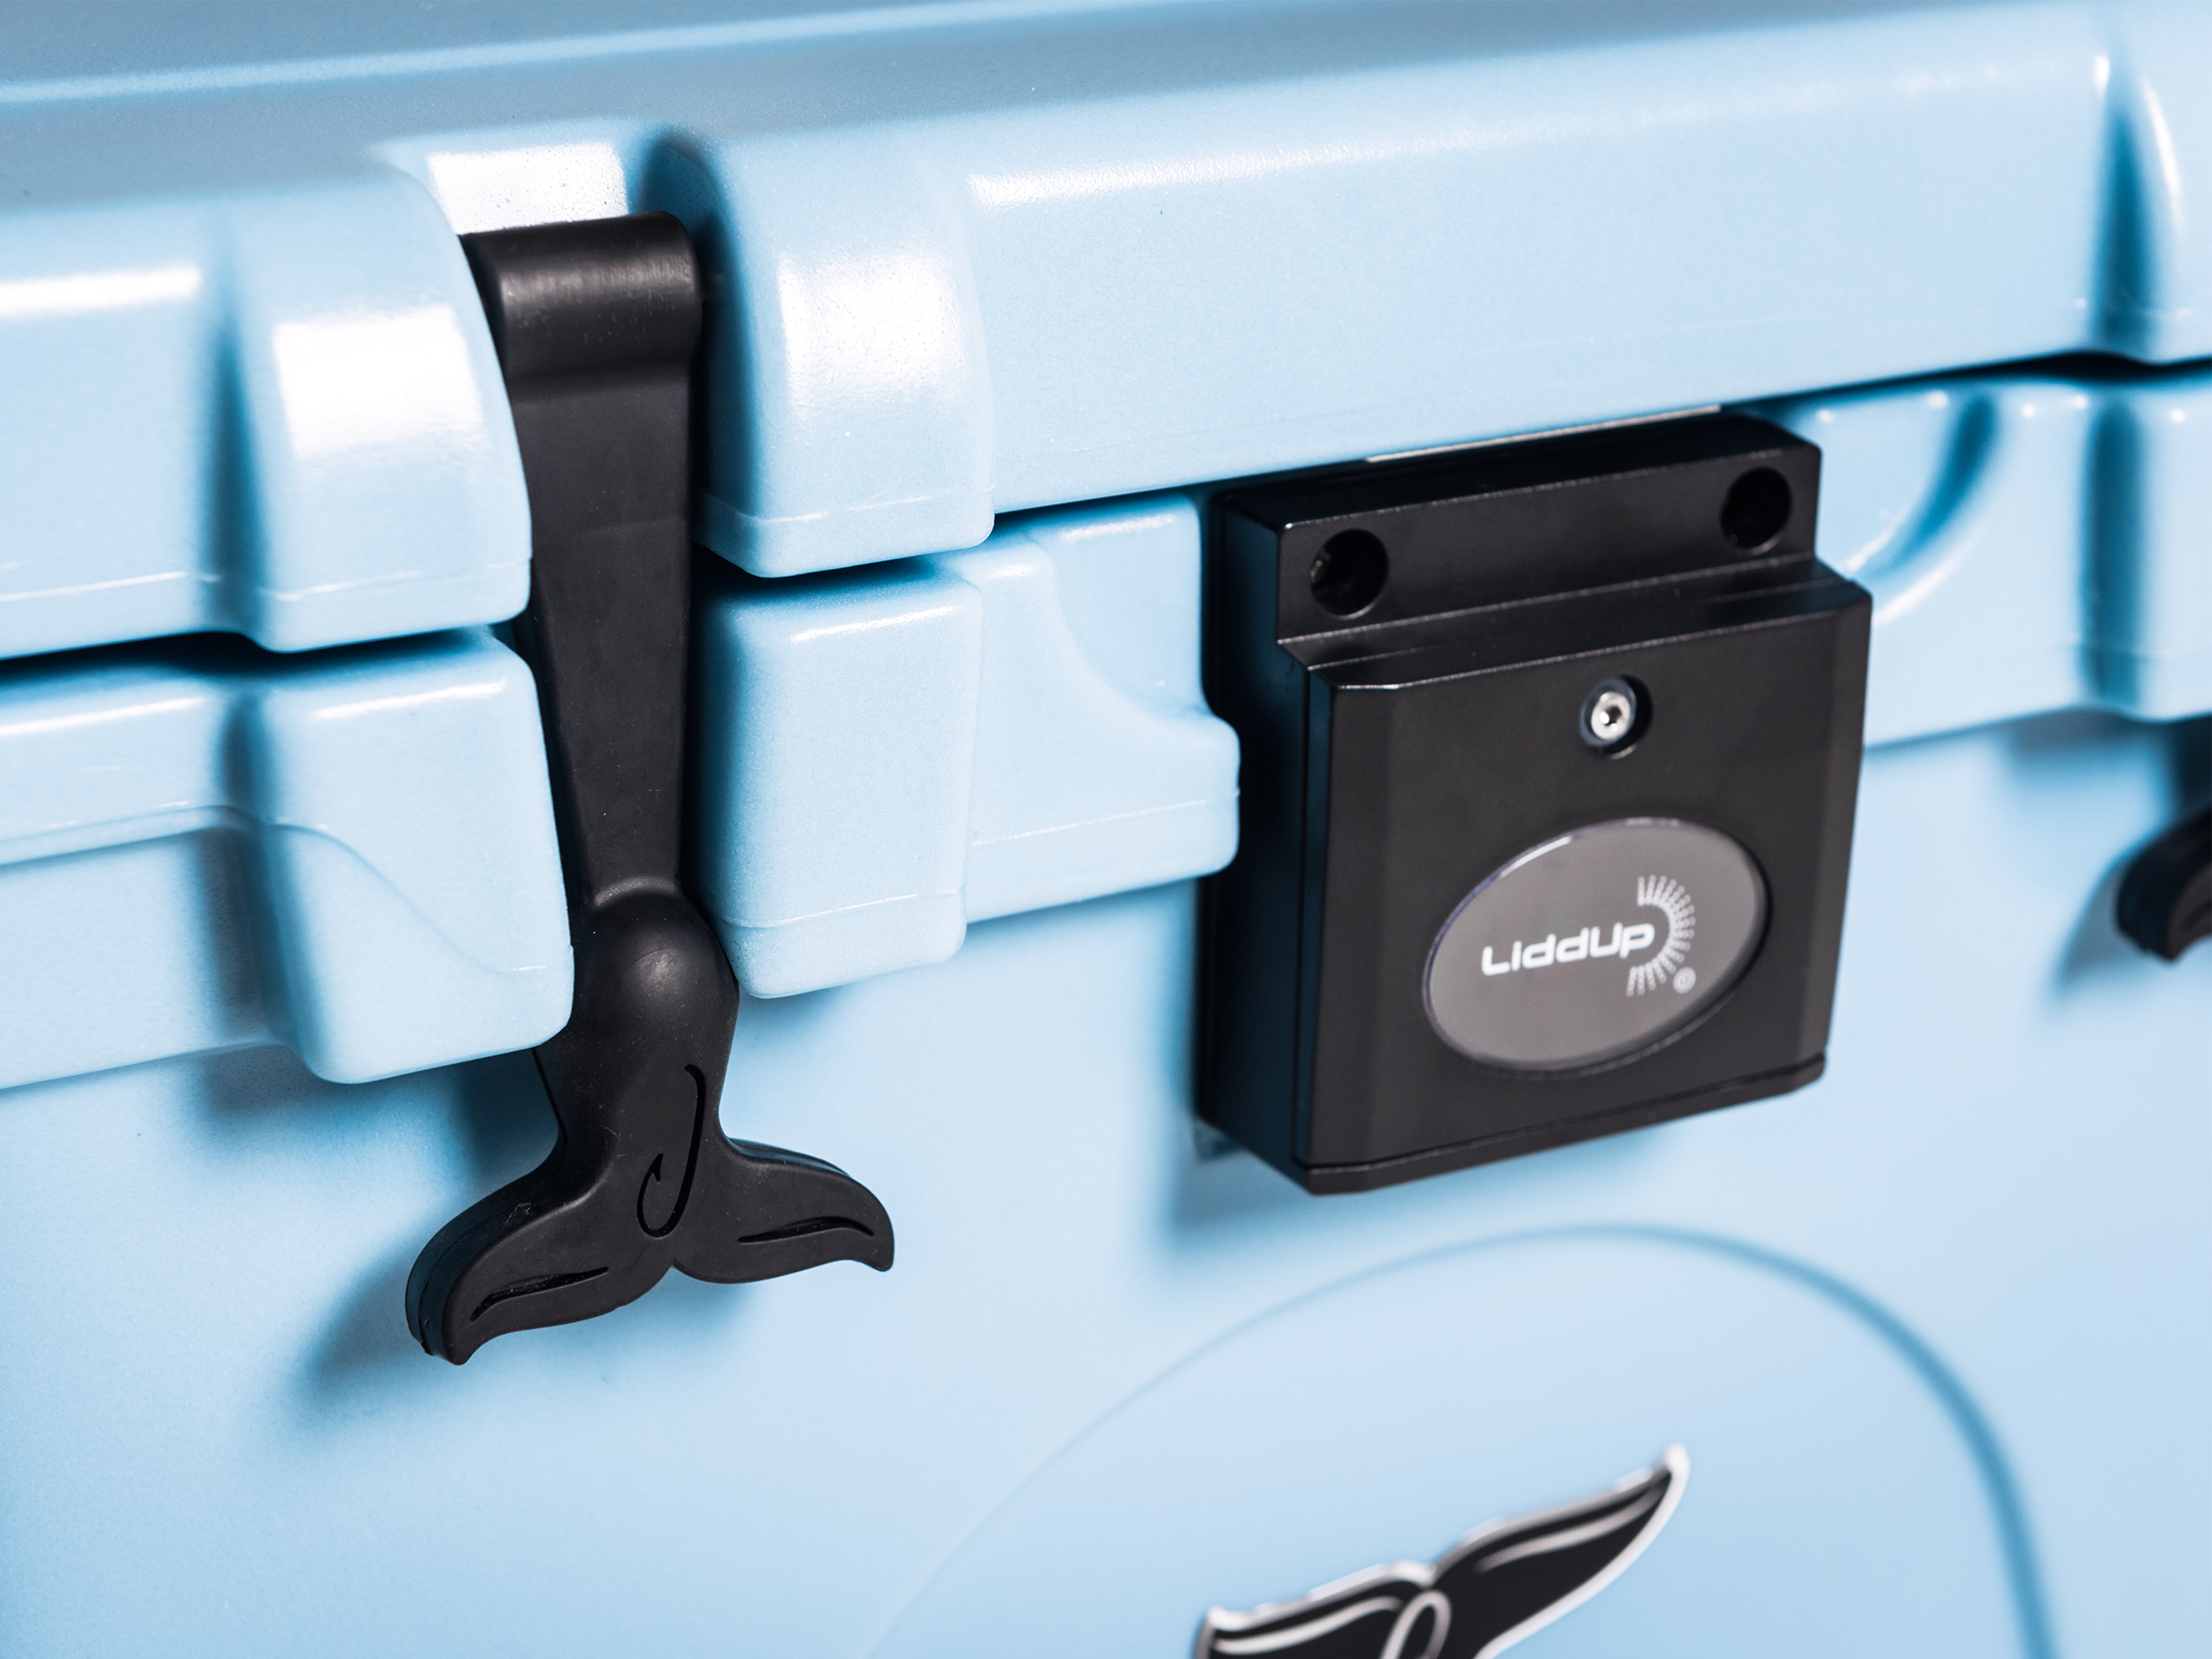 Check Out One Of Our Favorite Features Of The New Orca Liddup Durable Whale Tail Latches That Keep Your Lid Shut And Ensure A Perfect Whale Tail Orca Durable